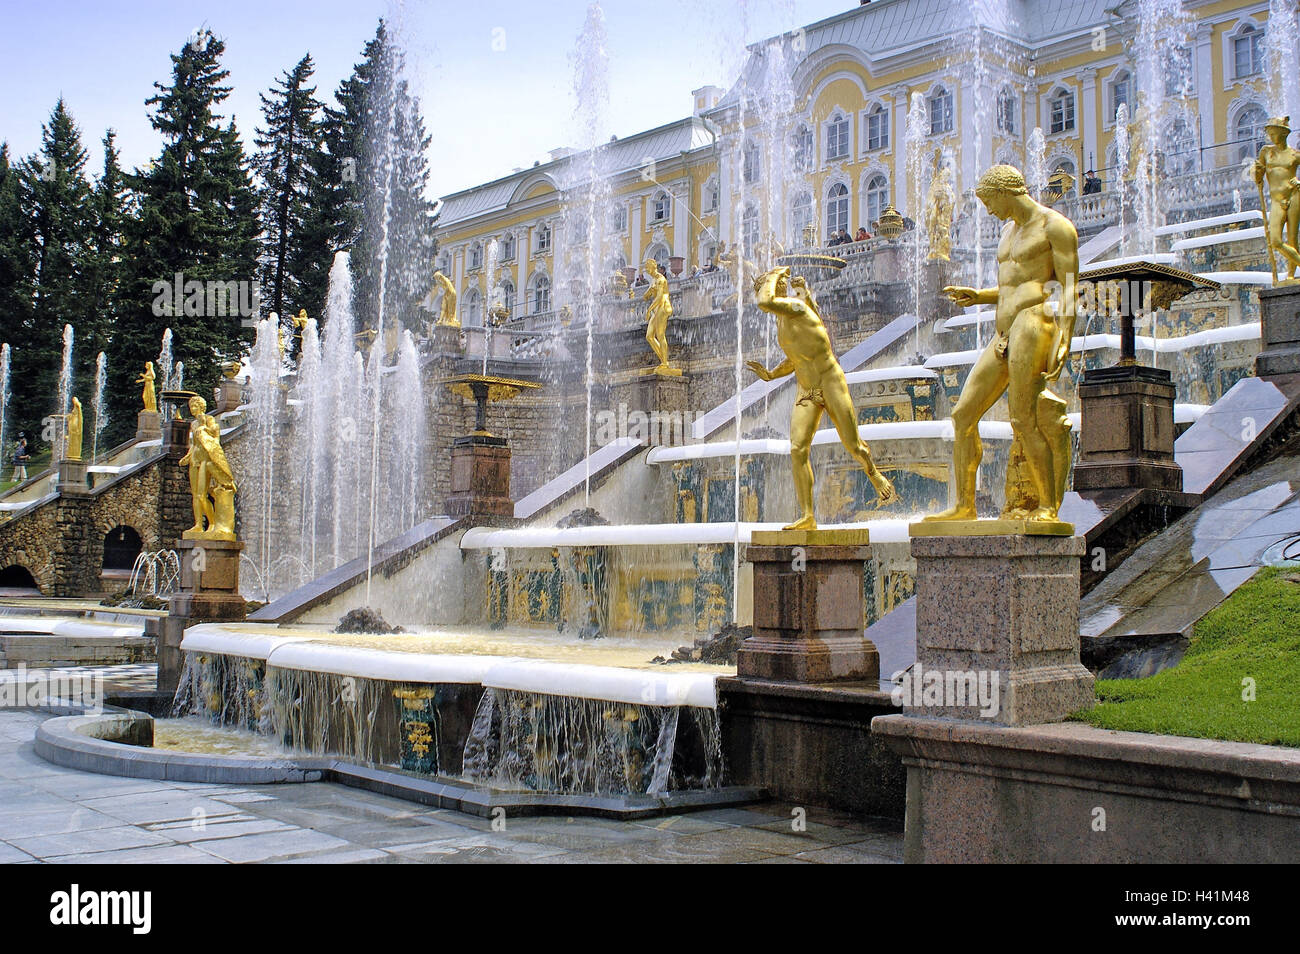 Russia, St. Petersburg, Peter's court, palace, fountain, 'big cascade', Saint Petersburg, Sankt-Peterburg, - Stock Image